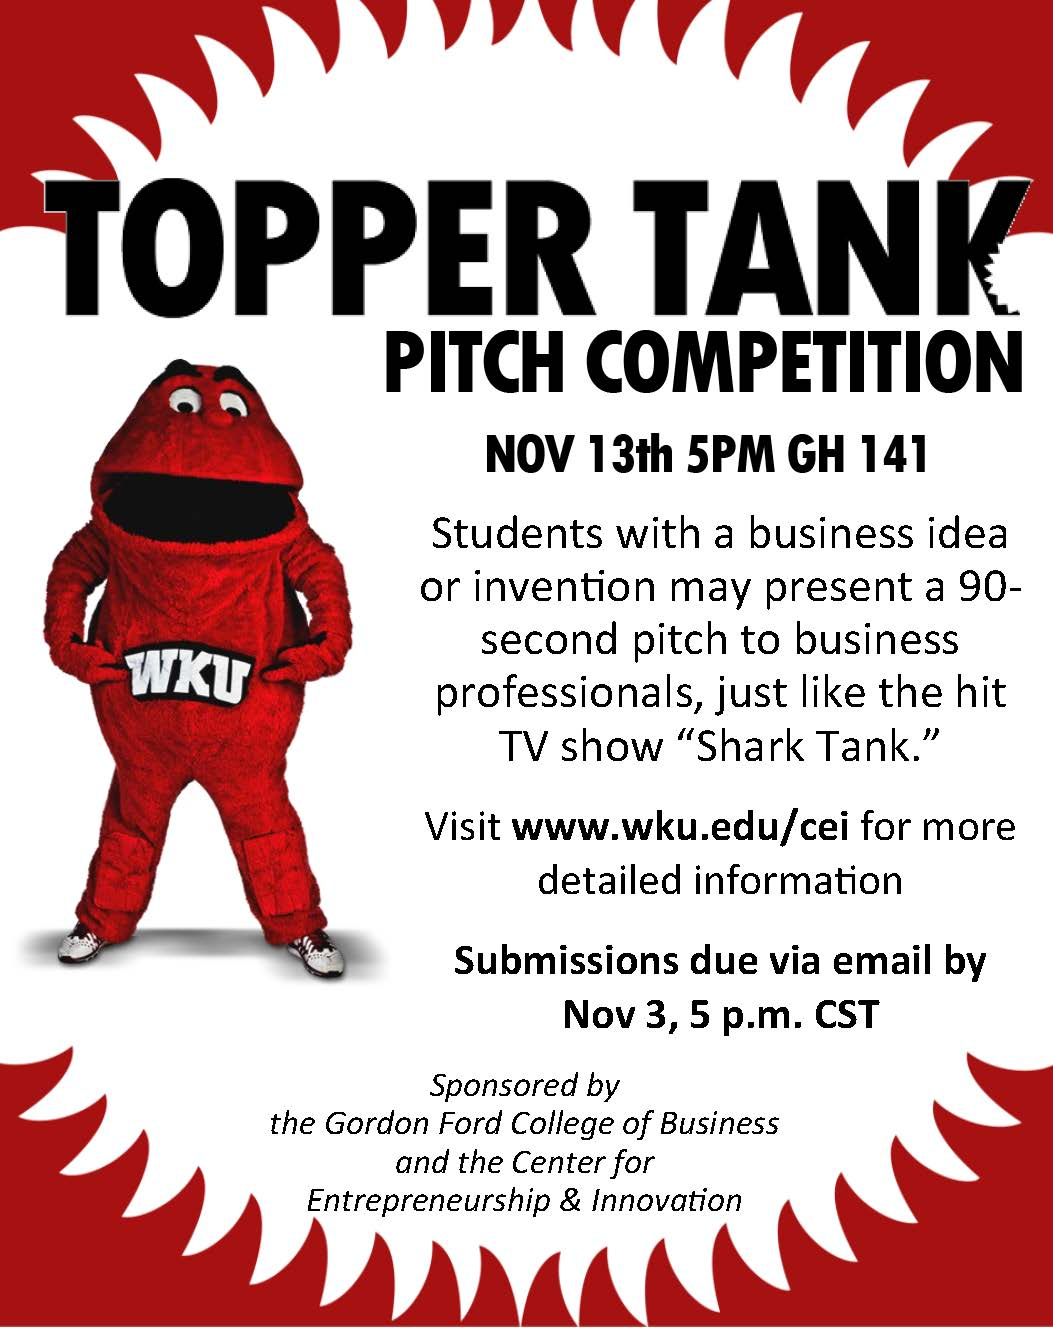 "Topper Tank Pitch Competition. November 13th, 5 p.m. Grise Hall 141,Students with a business idea or invention may present a 90-second pitch to business professionals, just like the hit TV show, ""Shark Tank."" Visit www.wku.edu/cei for more detailed information. Submissions due via email by November 3, 5 p.m. CST. Sponsored by the Gordon Ford College of Business and the Center for Entrepreneurship & Innovation."